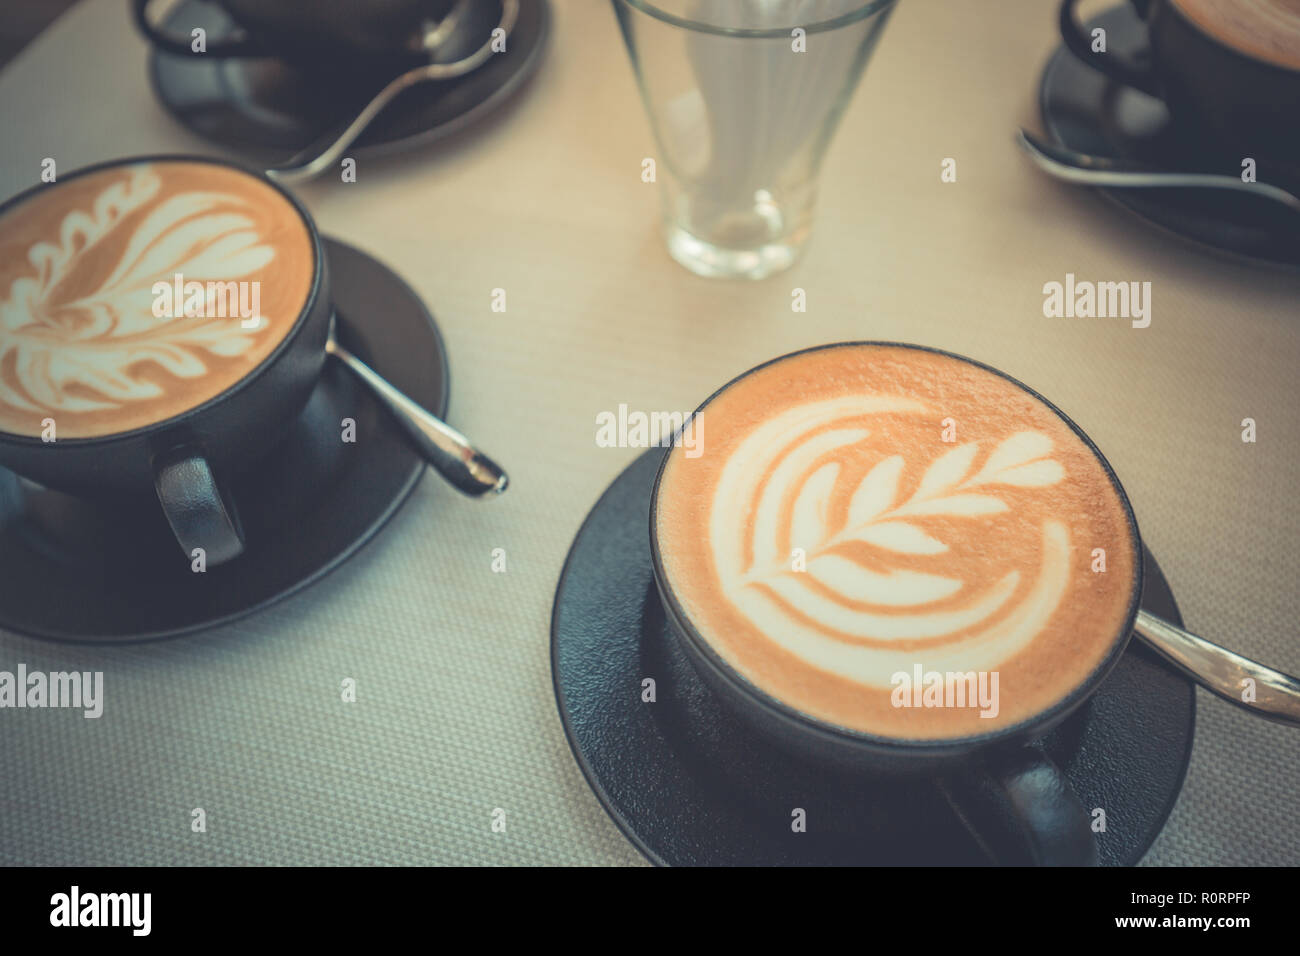 Hot art latte coffee in a cup on wooden table and coffee shop blur background with bokeh image. Latte art coffee table top view, happy relaxing mood - Stock Image